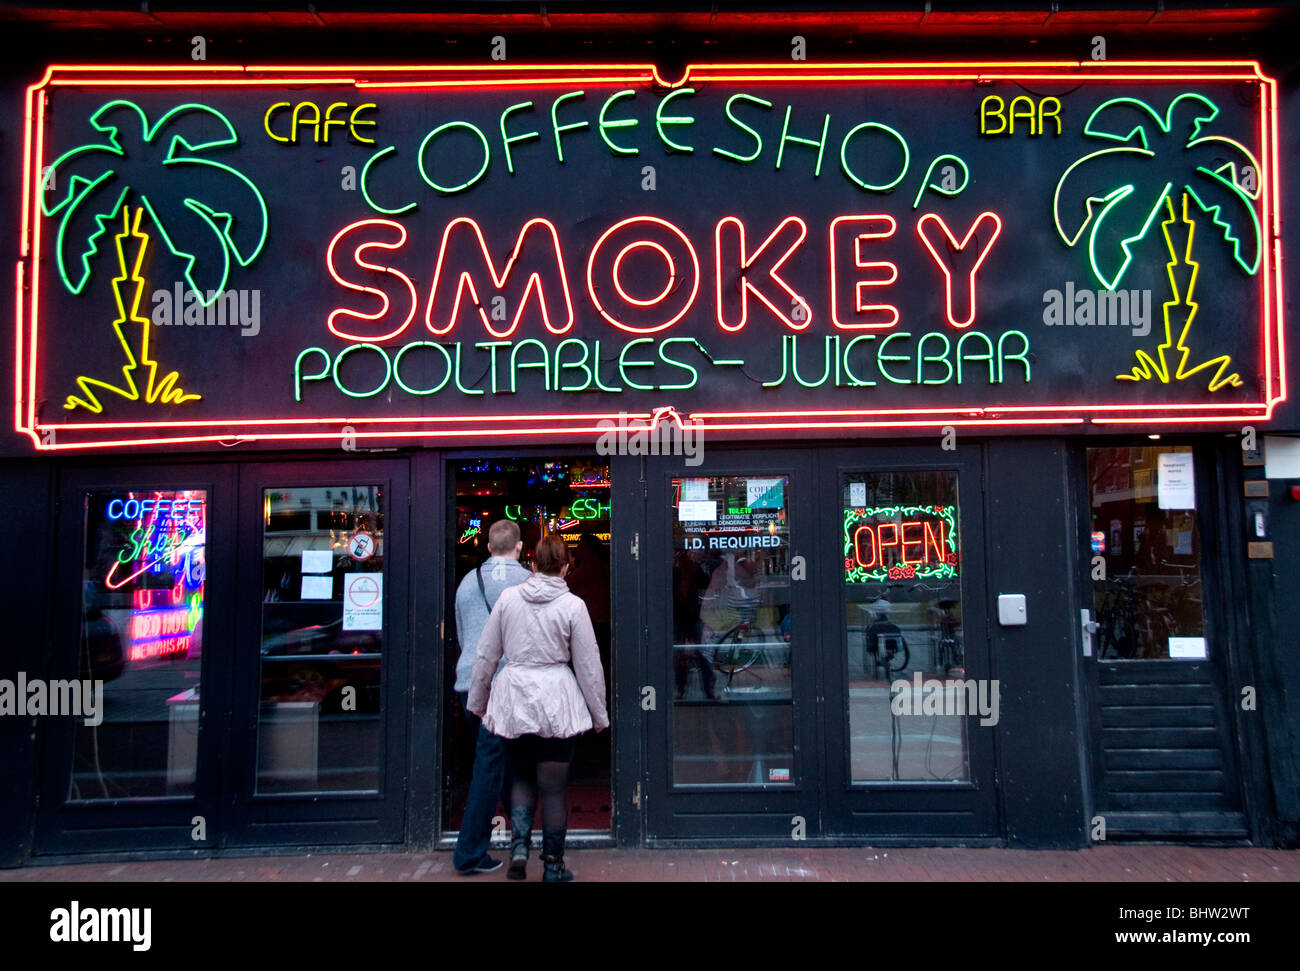 Amsterdam Coffee Shop Joint Haschisch Gras Canabis Marihuana Dope Marijuana Drugs cannabis coffeeshop - Stock Image